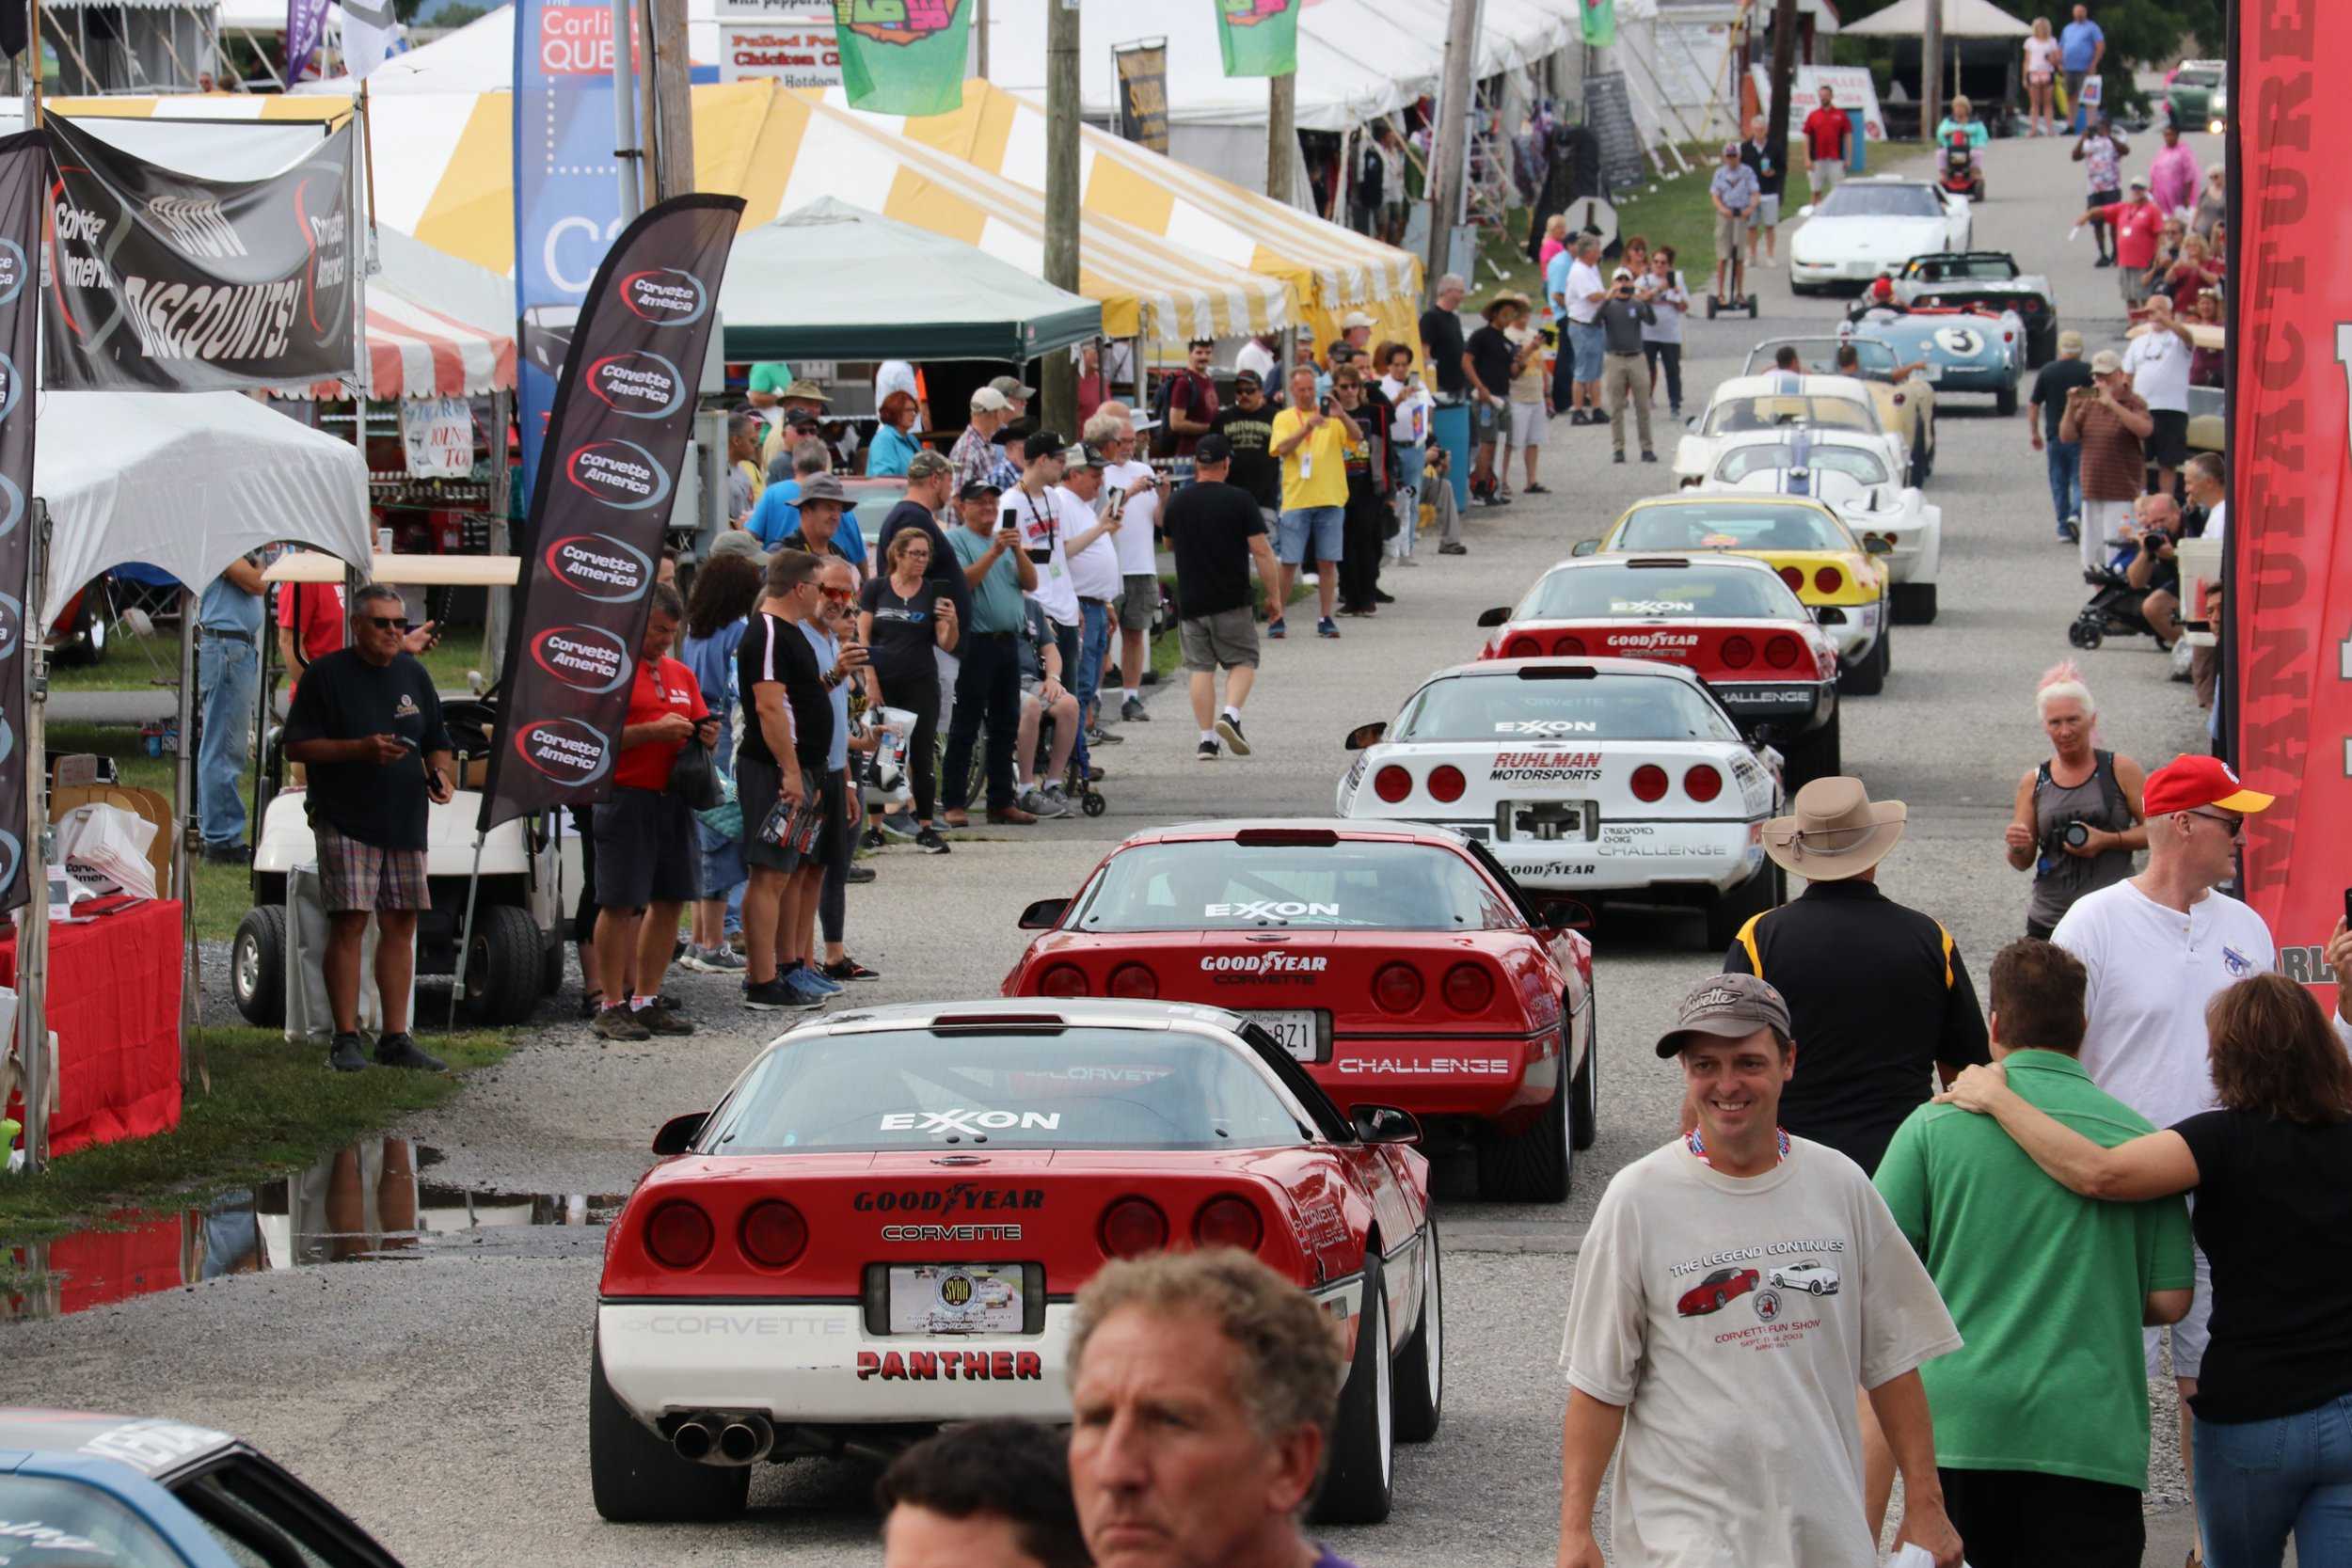 corvettes-at-carlisle-2019-one-for-the-record-books-2019-08-28_20-28-36_651853.jpg